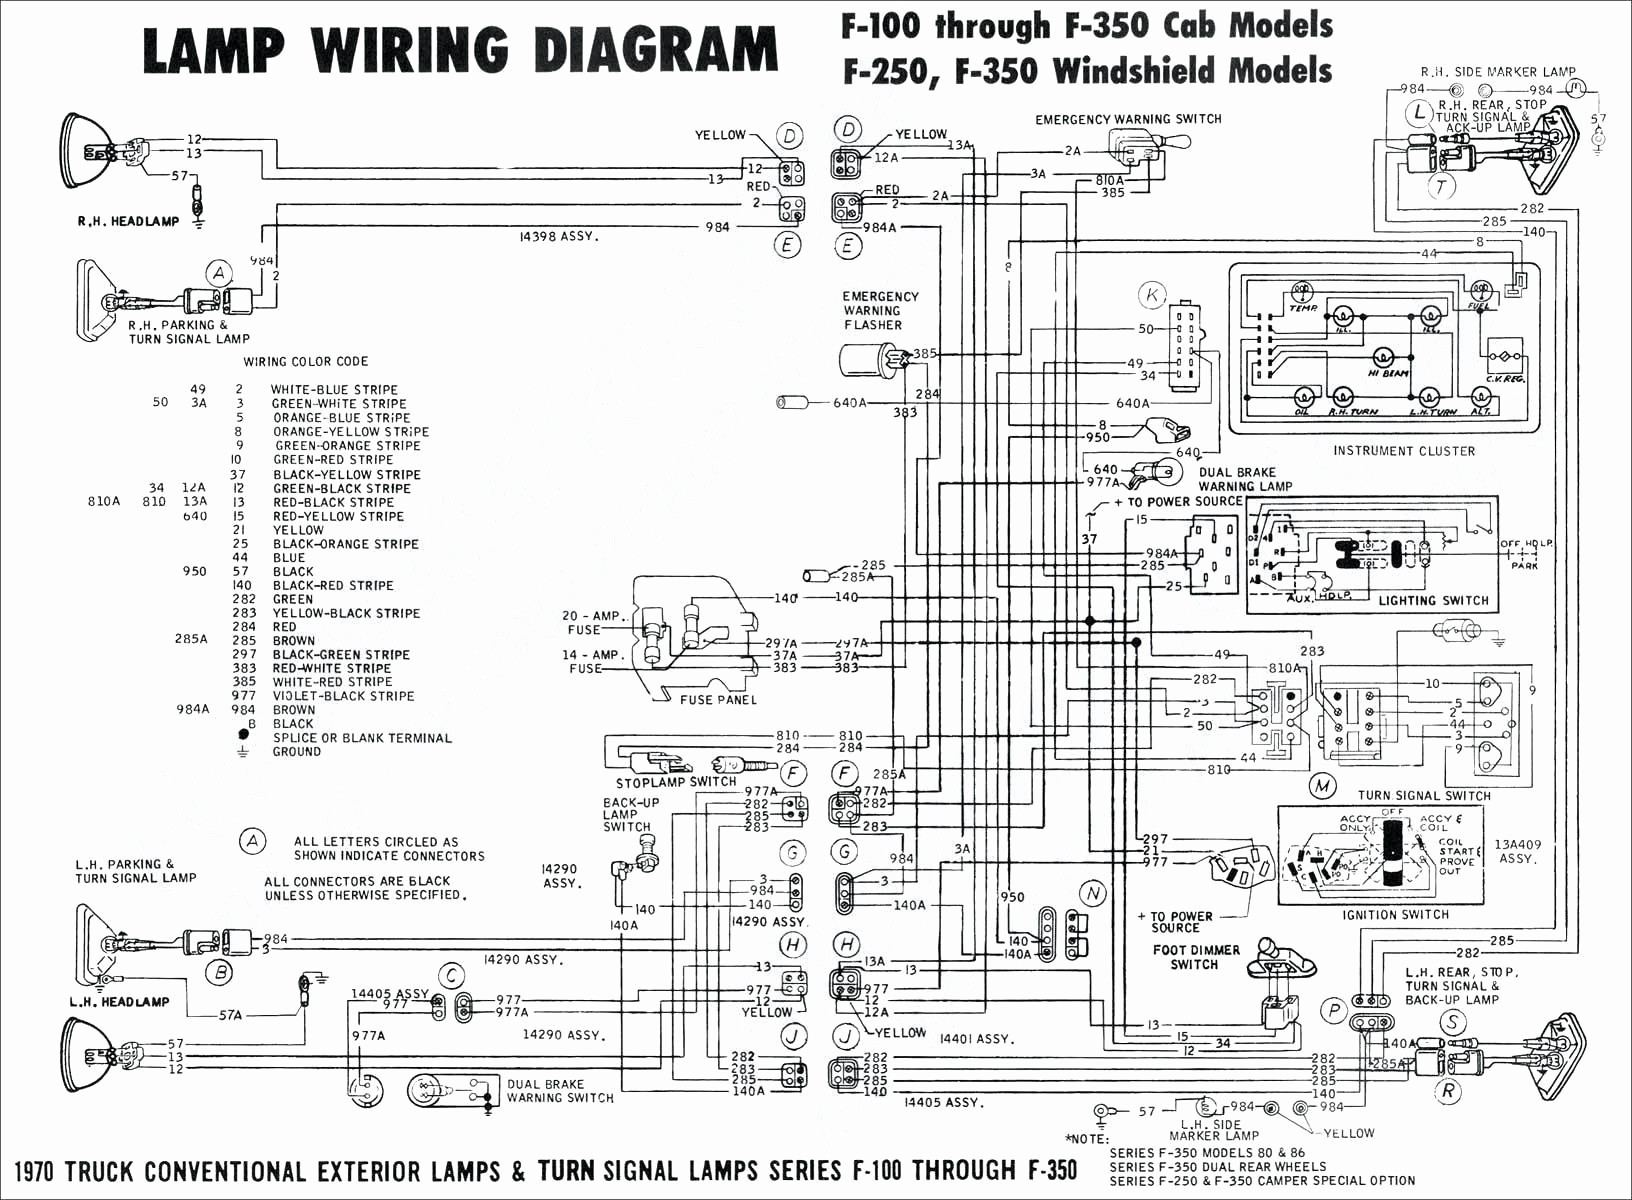 Bmw E46 M3 Radio Wiring Diagram Trusted Schematics 2000 528i Harness Image Business